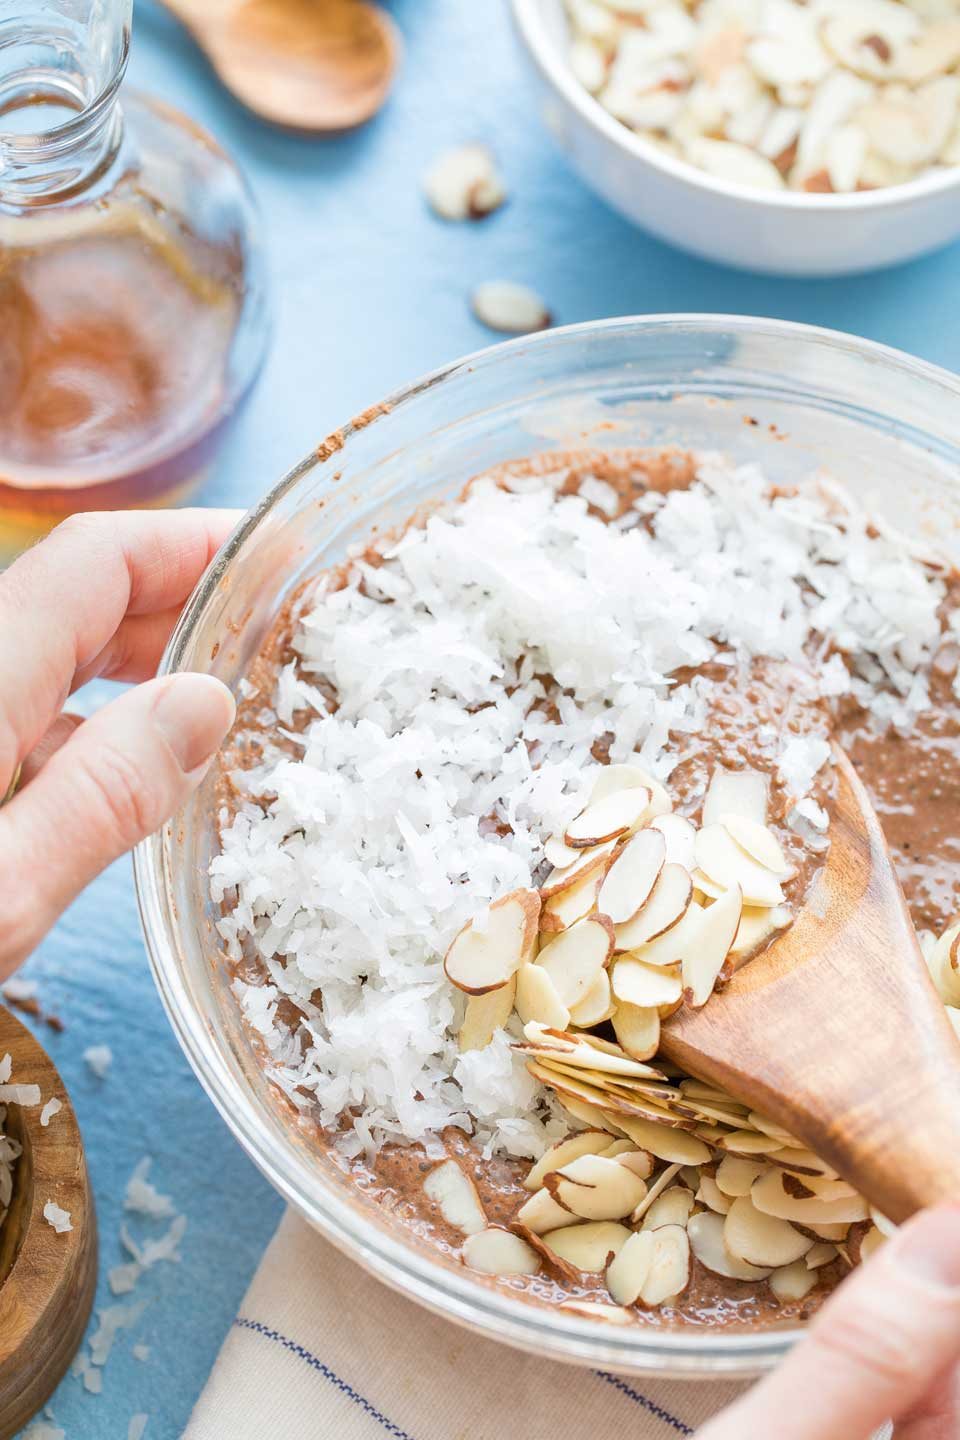 Hand holding a glass mixing bowl with chocolate chia pudding in the bottom, covered with a lavyer of shredded coconut and sliced almonds that are just being mixed in with a wooden spoon.